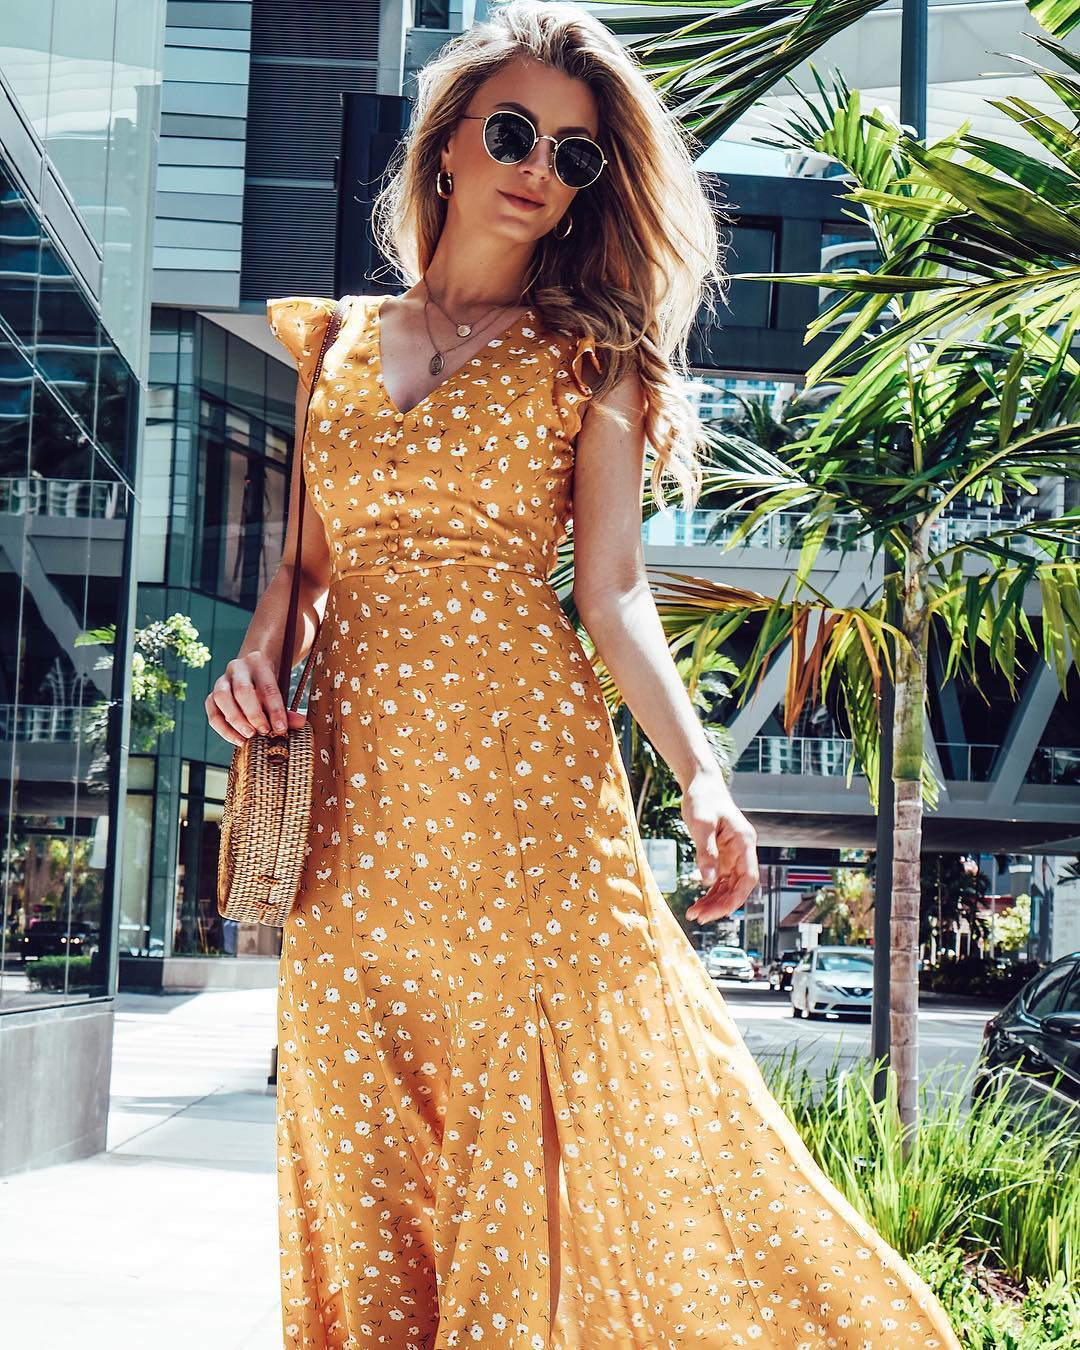 0e40d34575aa MVP Trend of the Week: 16 Ways to Shop Spring 2019's Must-Have Yellow Trend